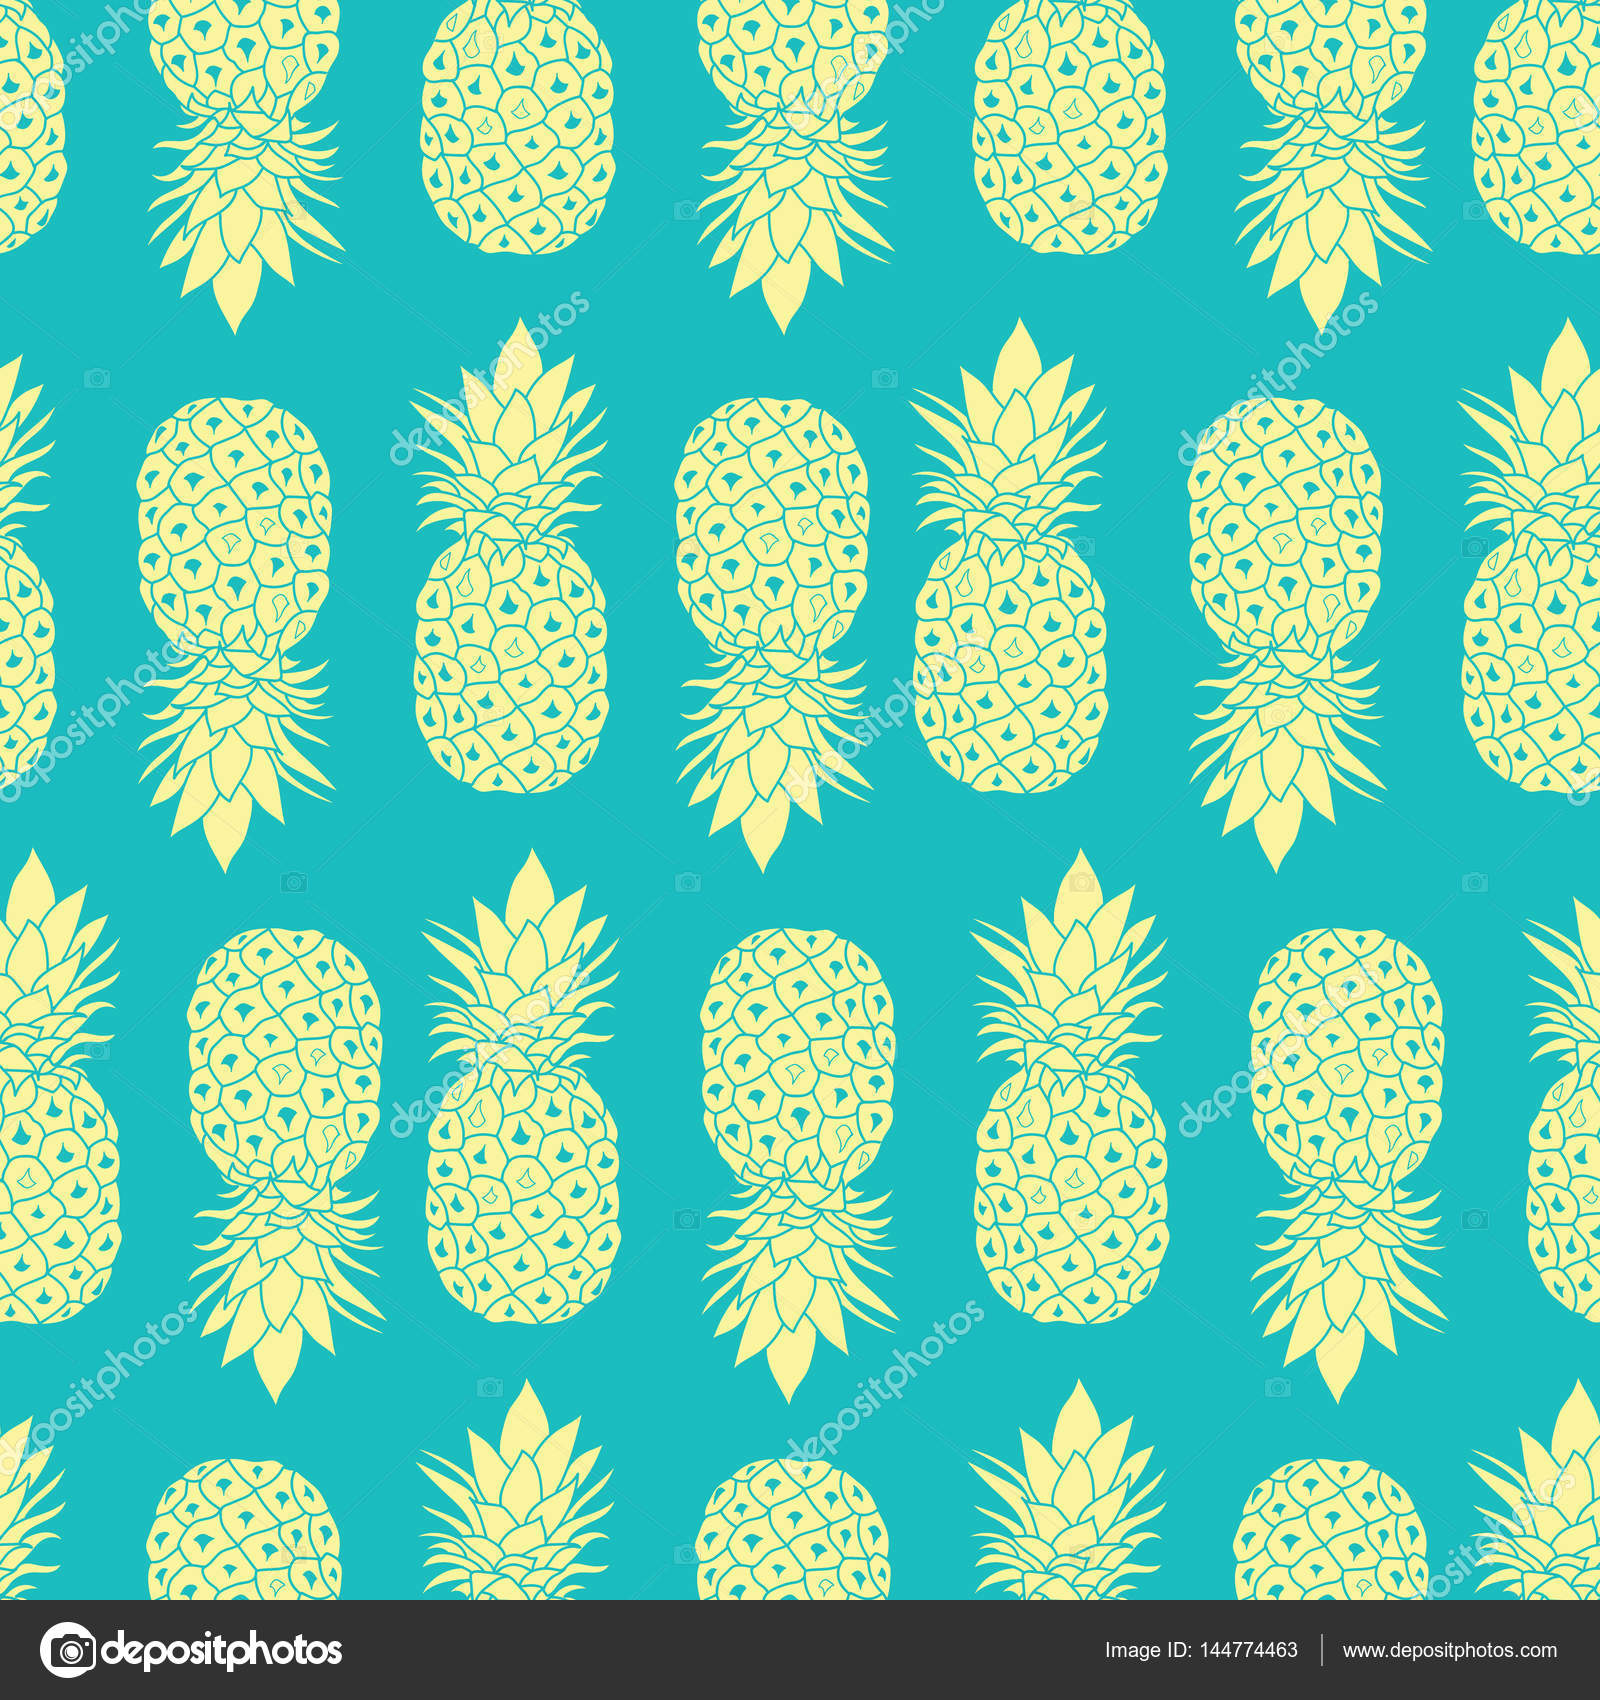 Fresh Blue Yellow Pineapples Geometric Vector Repeat Seamless Pattrern In Grey And Colors Great For Fabric Packaging Wallpaper Invitations